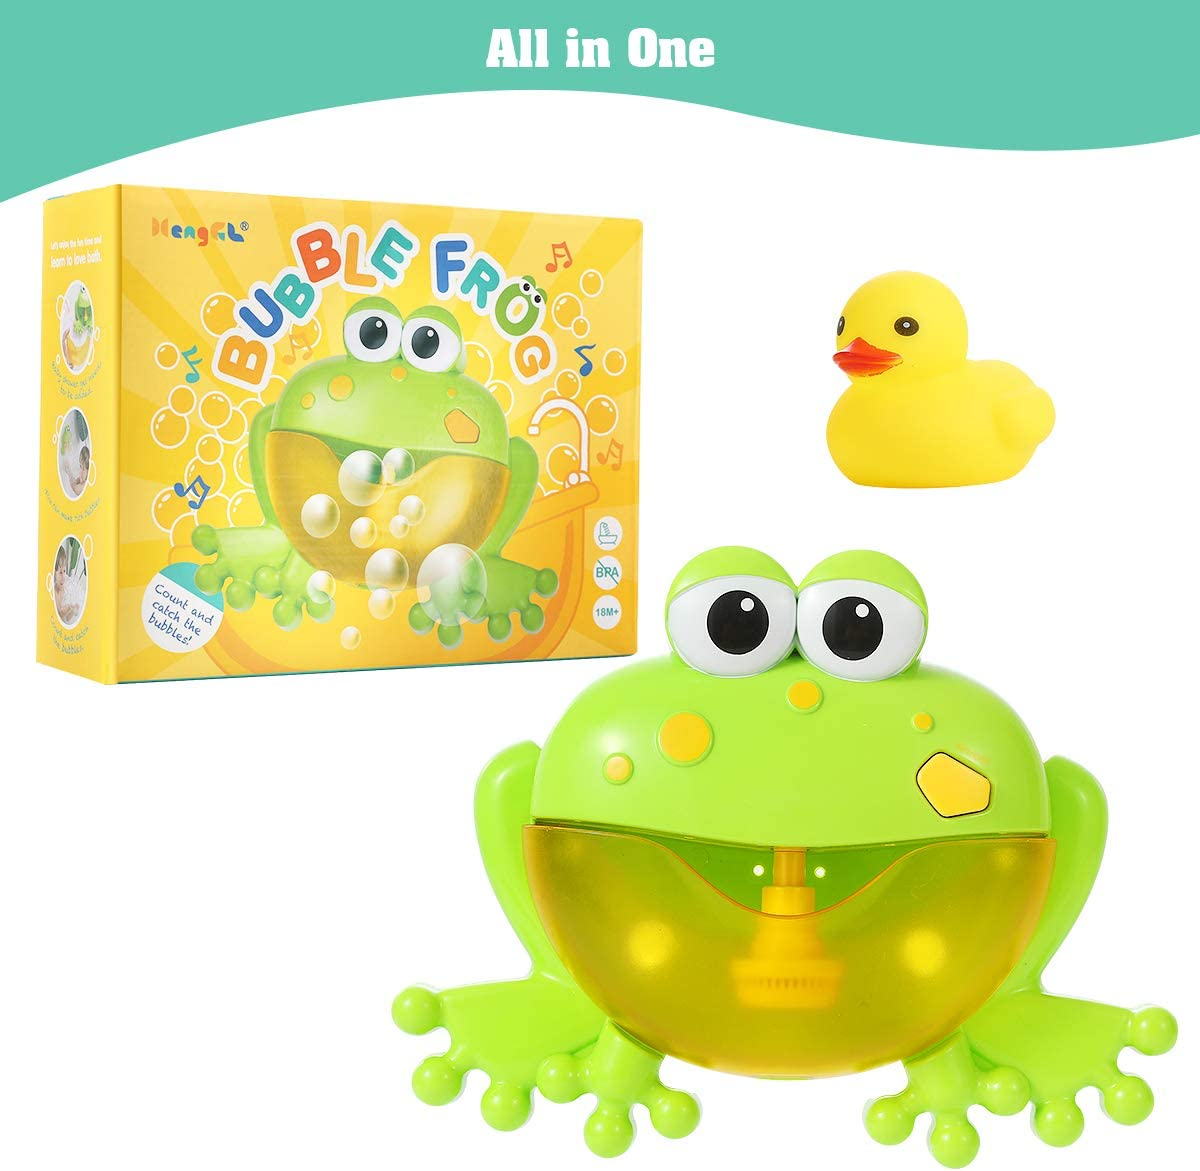 Frog bubble maker, in green and yellow color, with rubber duck